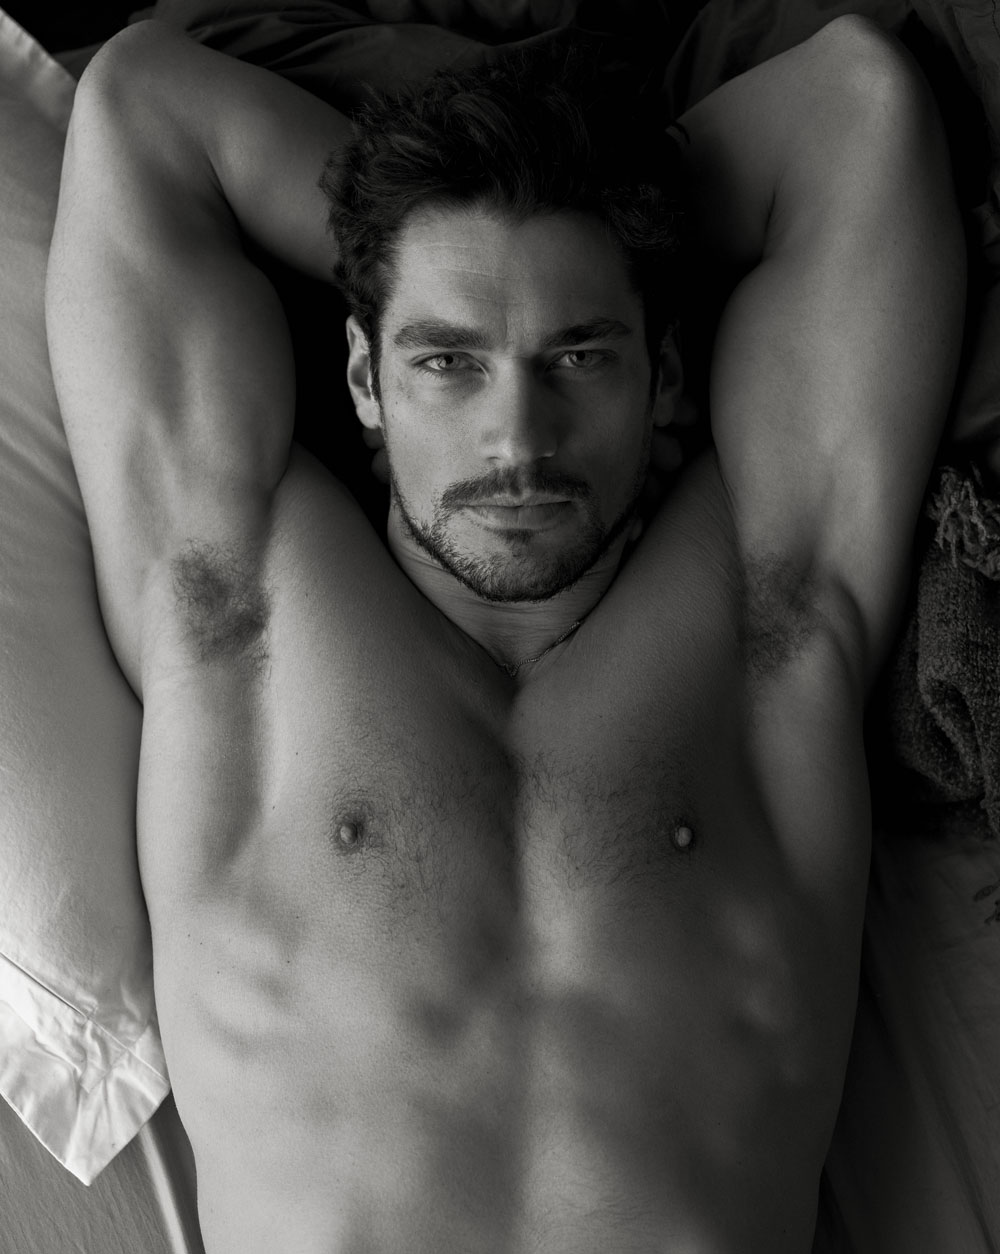 http://www.weloveguys.net/wp-content/gallery/david-gandy/david_gandy